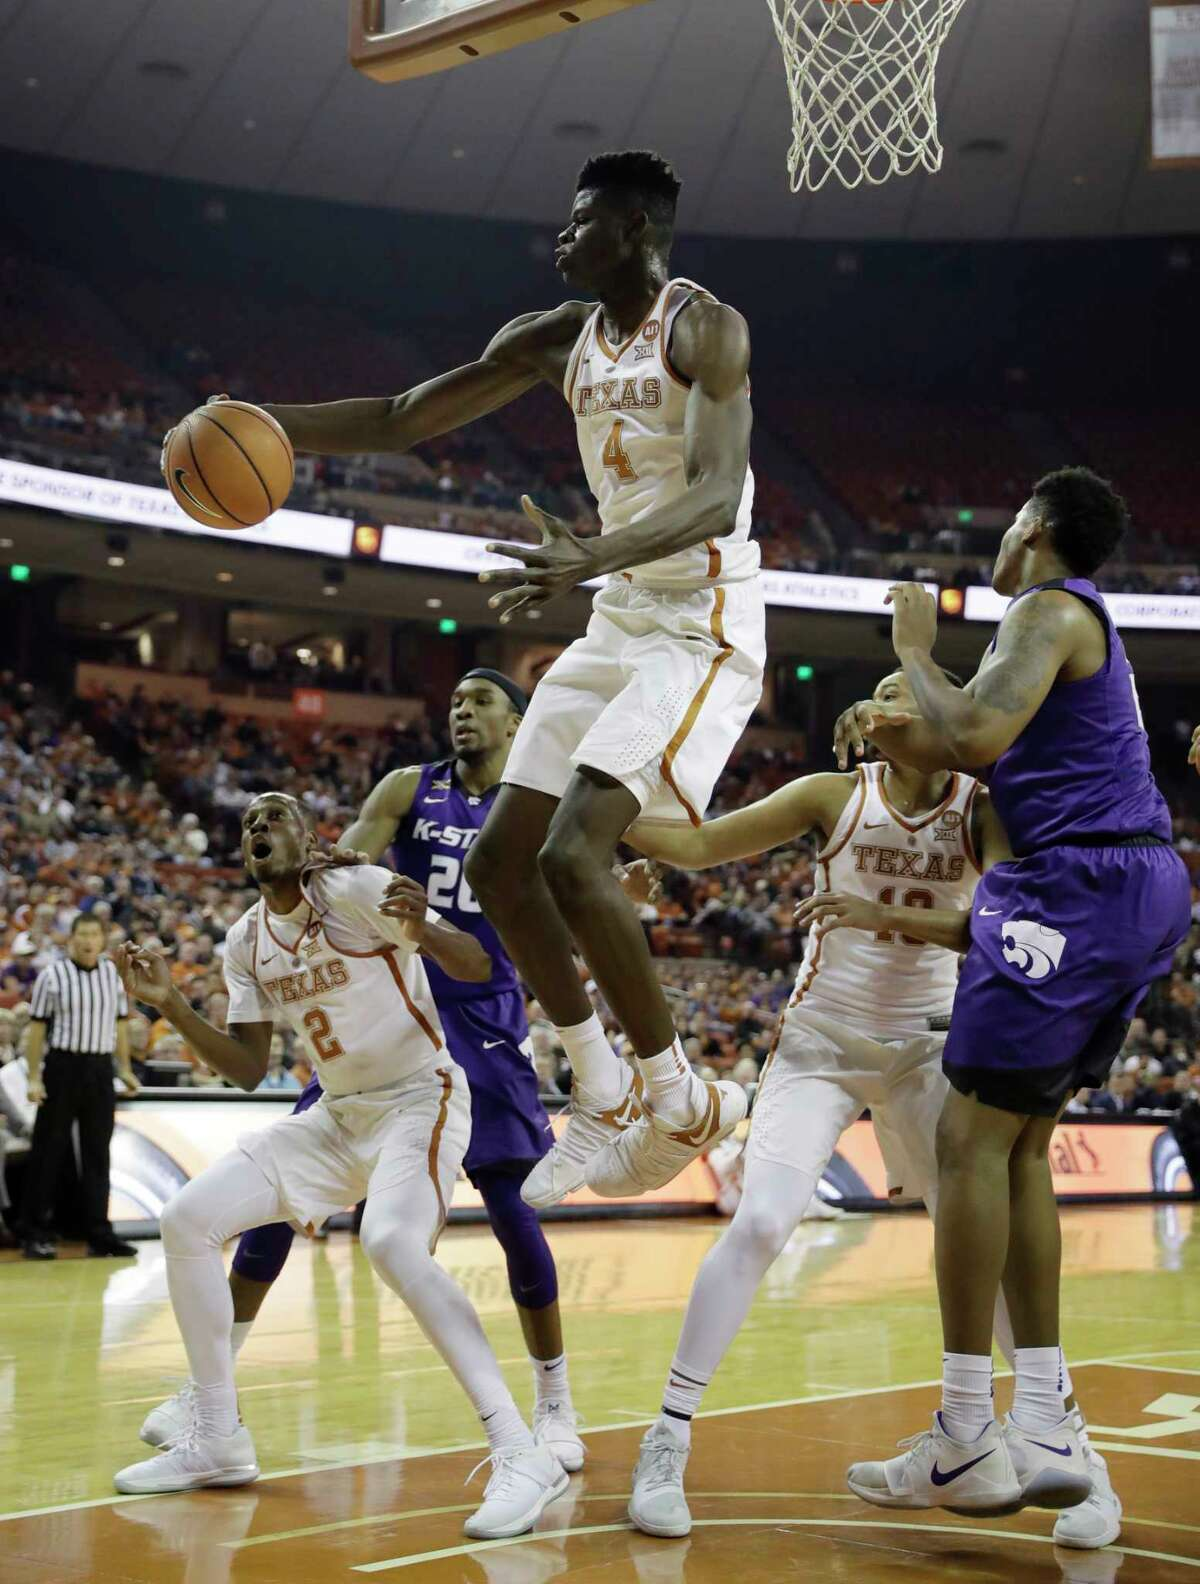 Texas forward Mohamed Bamba (4) grabs a rebound during the first half of an NCAA college basketball game against Kansas State, Wednesday, Feb. 7, 2018, in Austin, Texas. (AP Photo/Eric Gay)